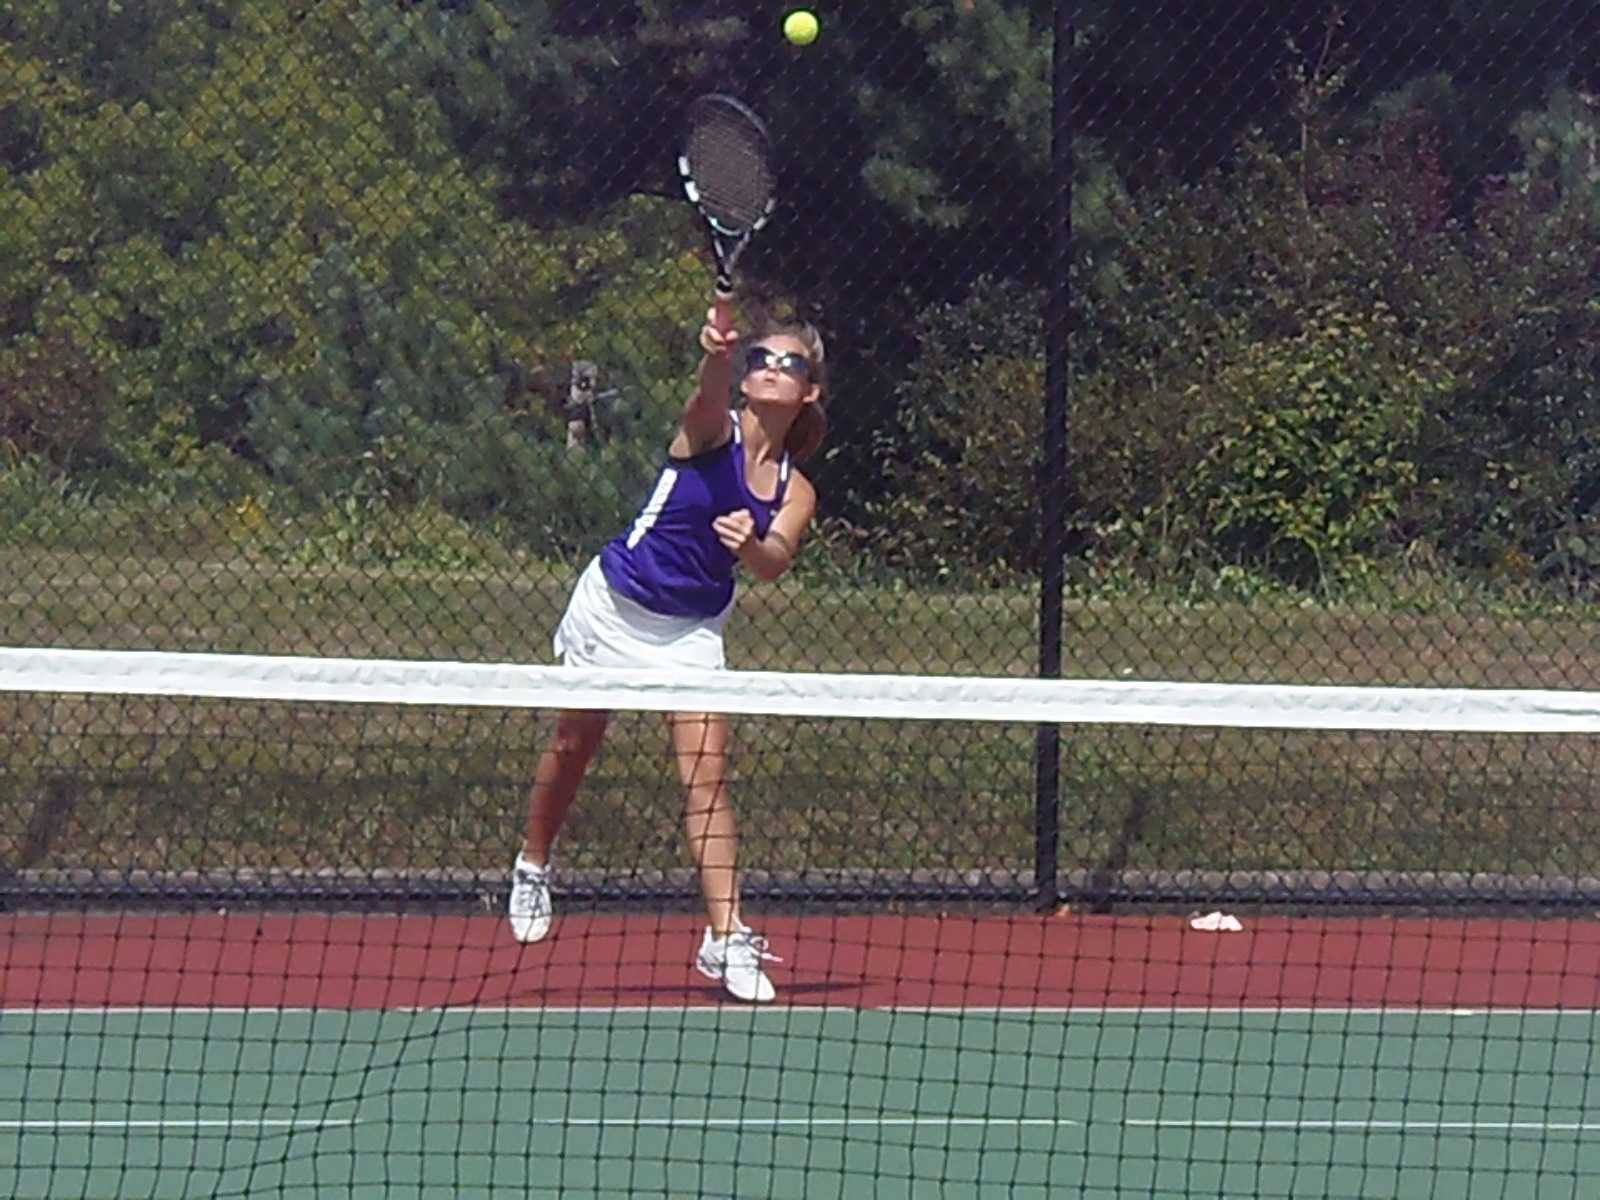 Returning the favor: Sophomore Morgan Shaming hits the ball bak to her opponent in section doubles at Baldwin , Sept. 25. The girls tennis team showed much improvement from previous seasons.